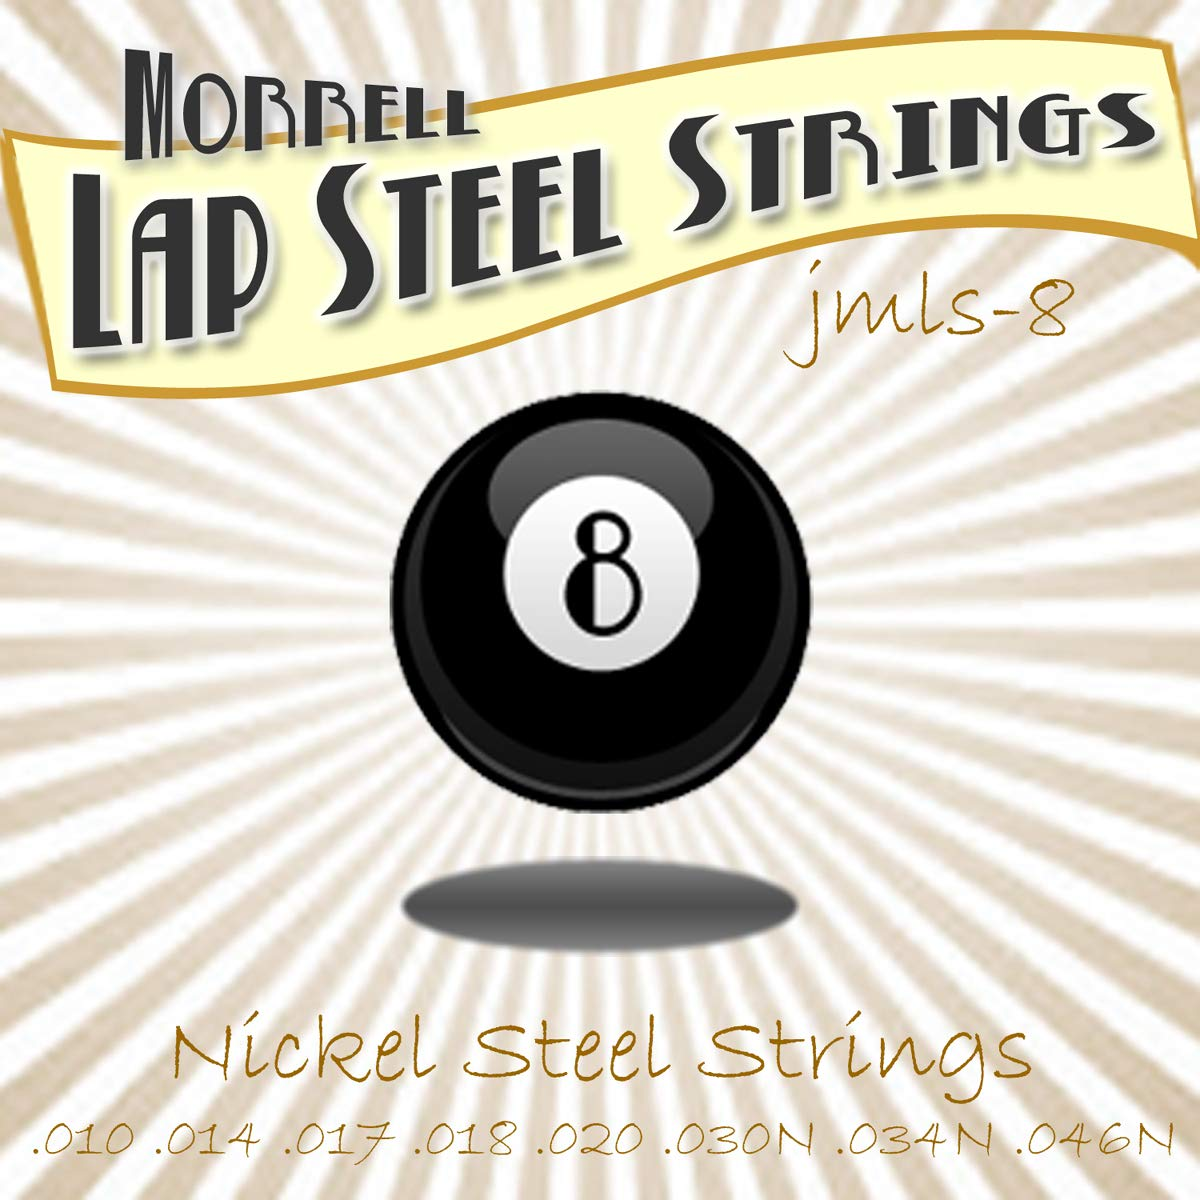 Joe Morrell Premium JMLS-8 8-String Lap Steel String Set (3 Pack) by Morrell